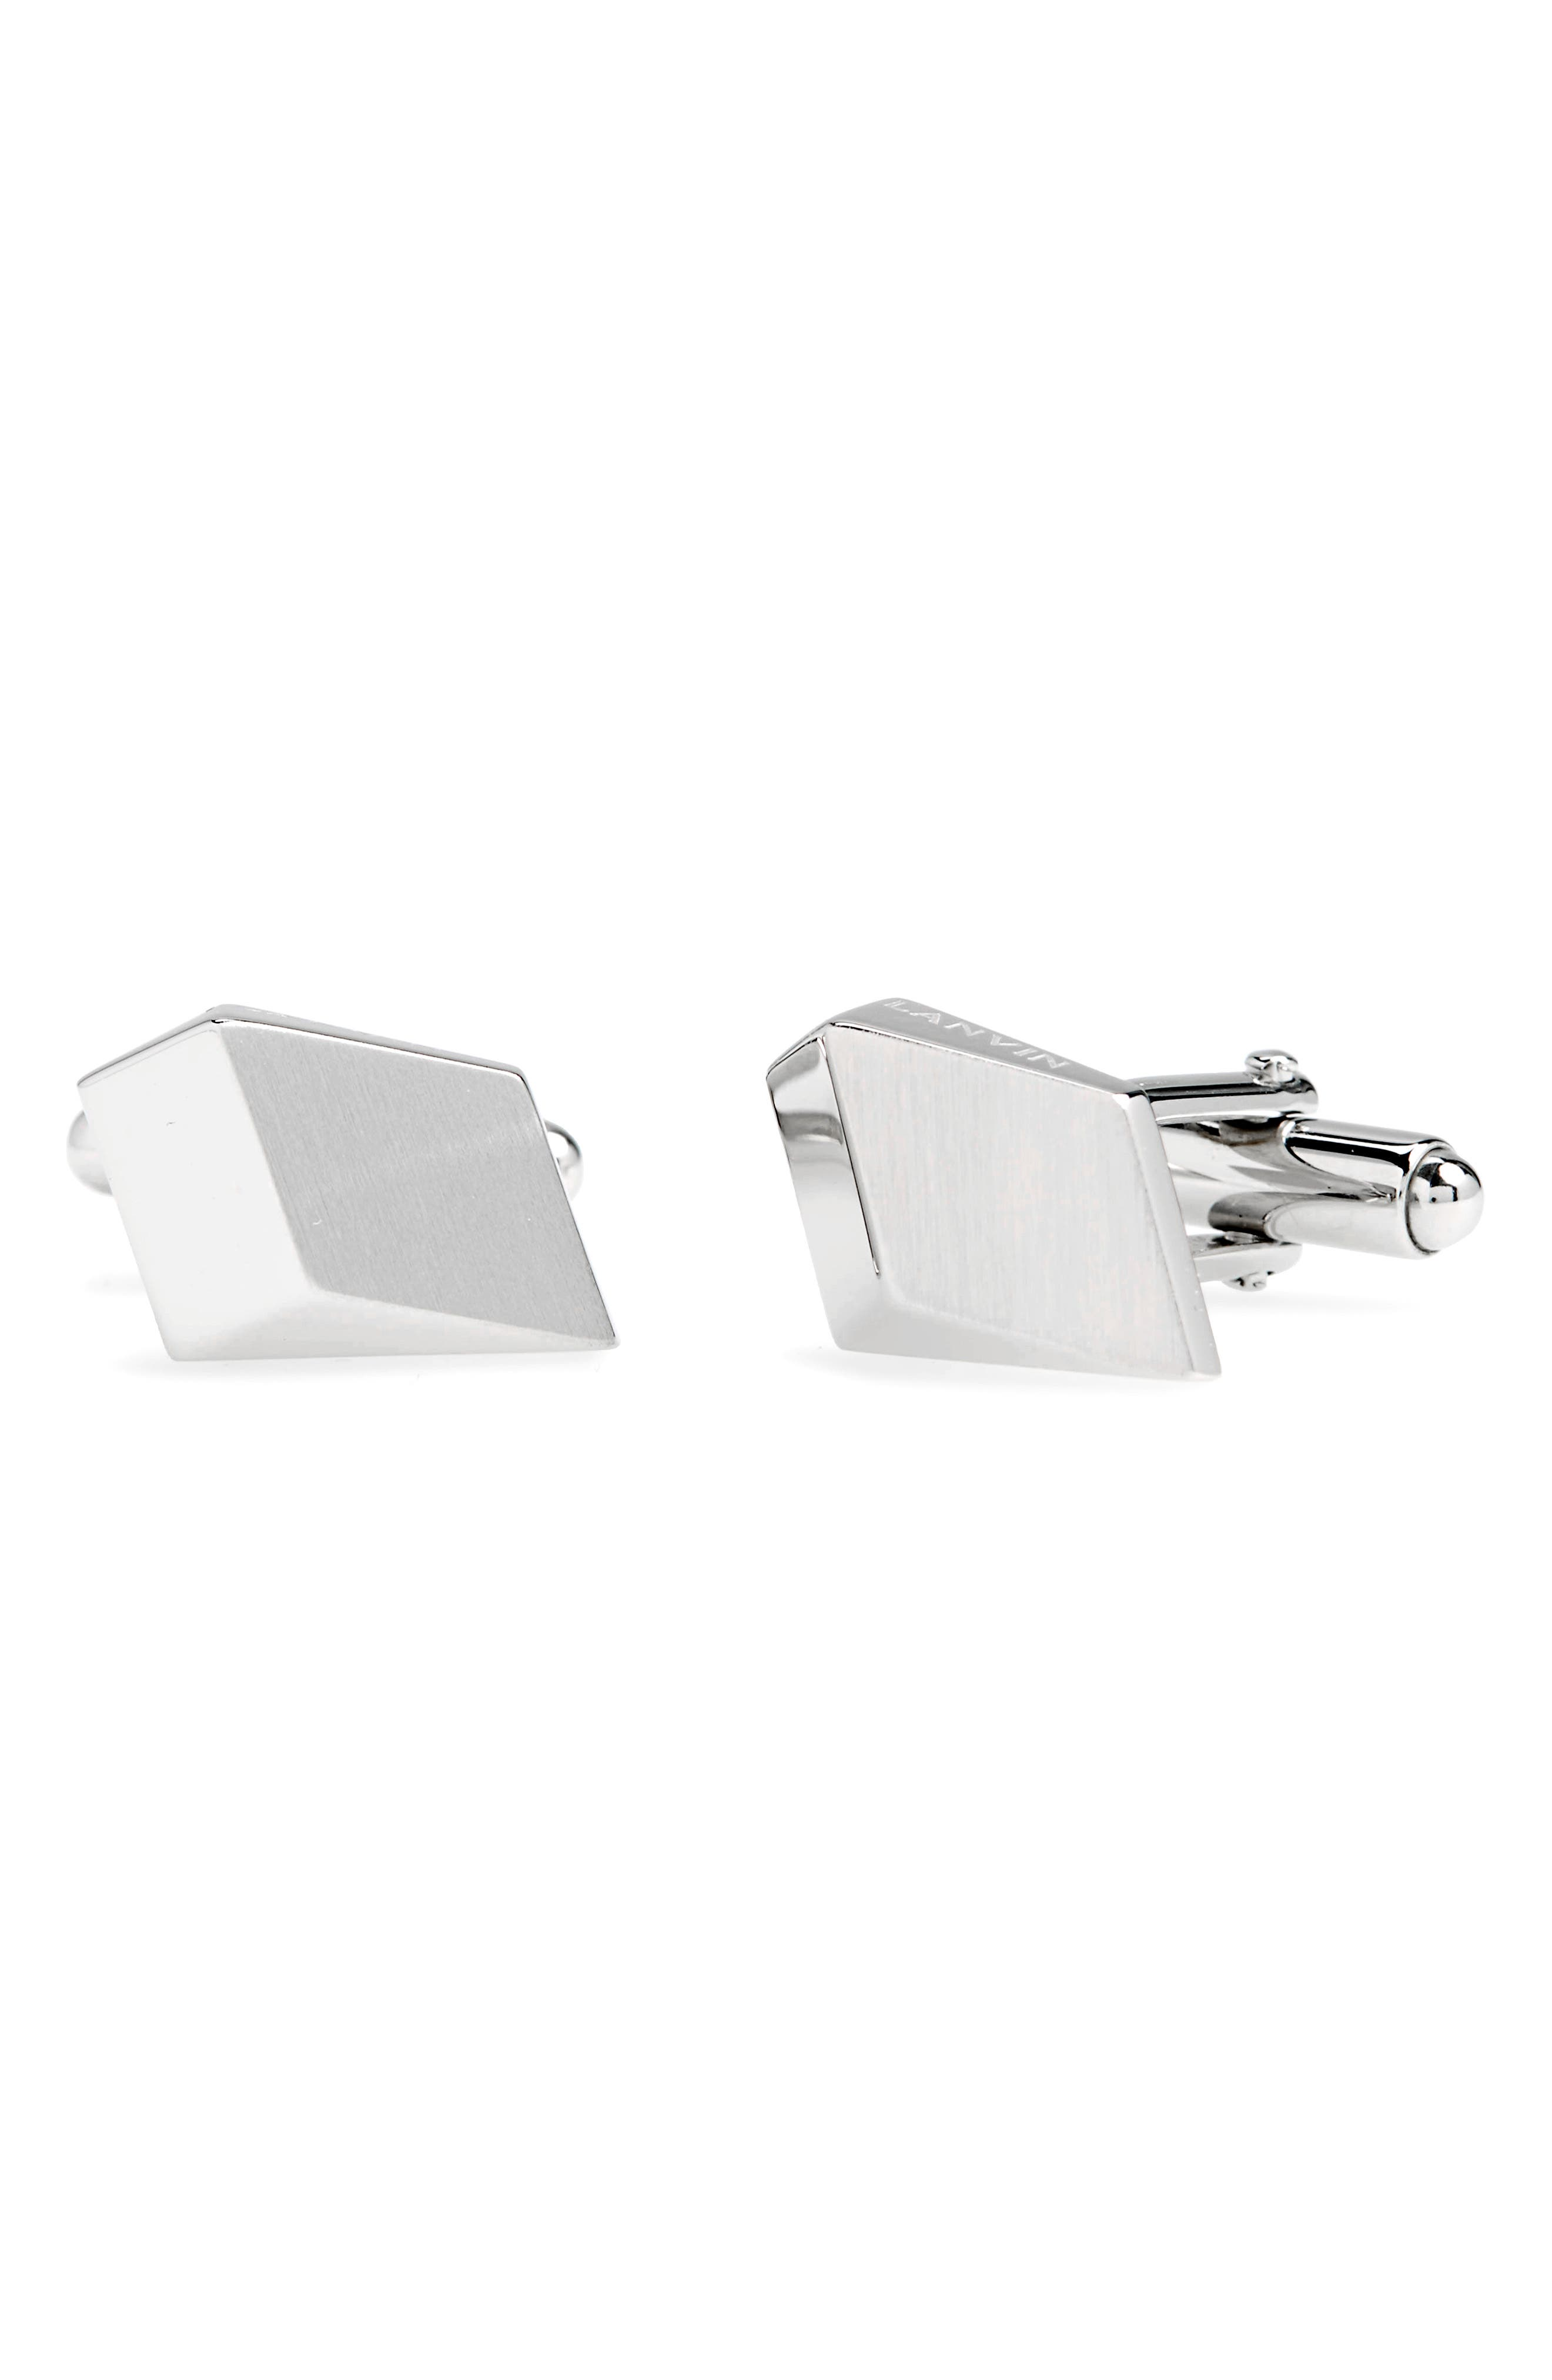 Geo Square Cuff Links,                             Main thumbnail 1, color,                             040